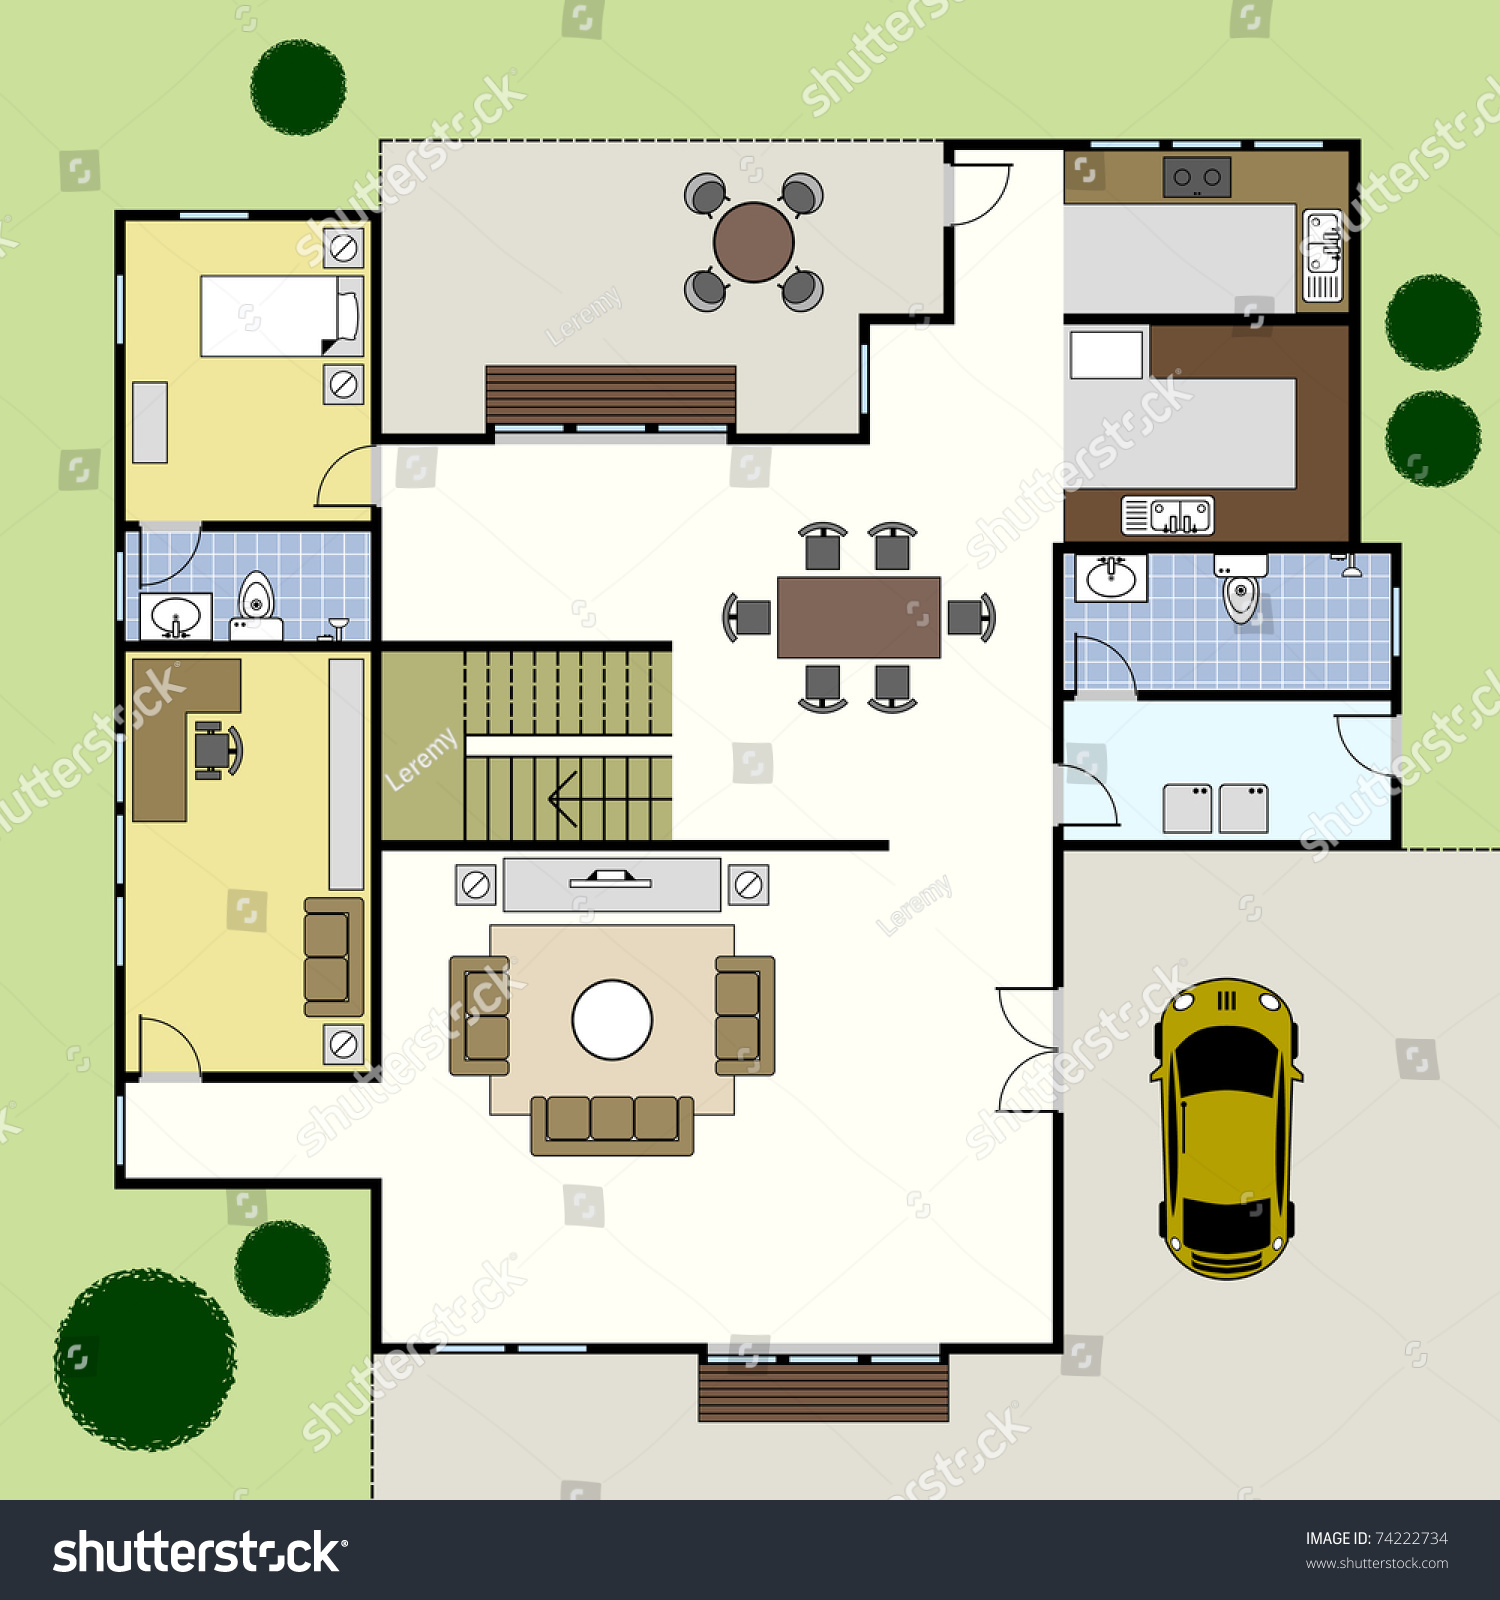 Awe Inspiring Ground Floor Plan Floorplan House Home Stock Vector 74222734 Largest Home Design Picture Inspirations Pitcheantrous